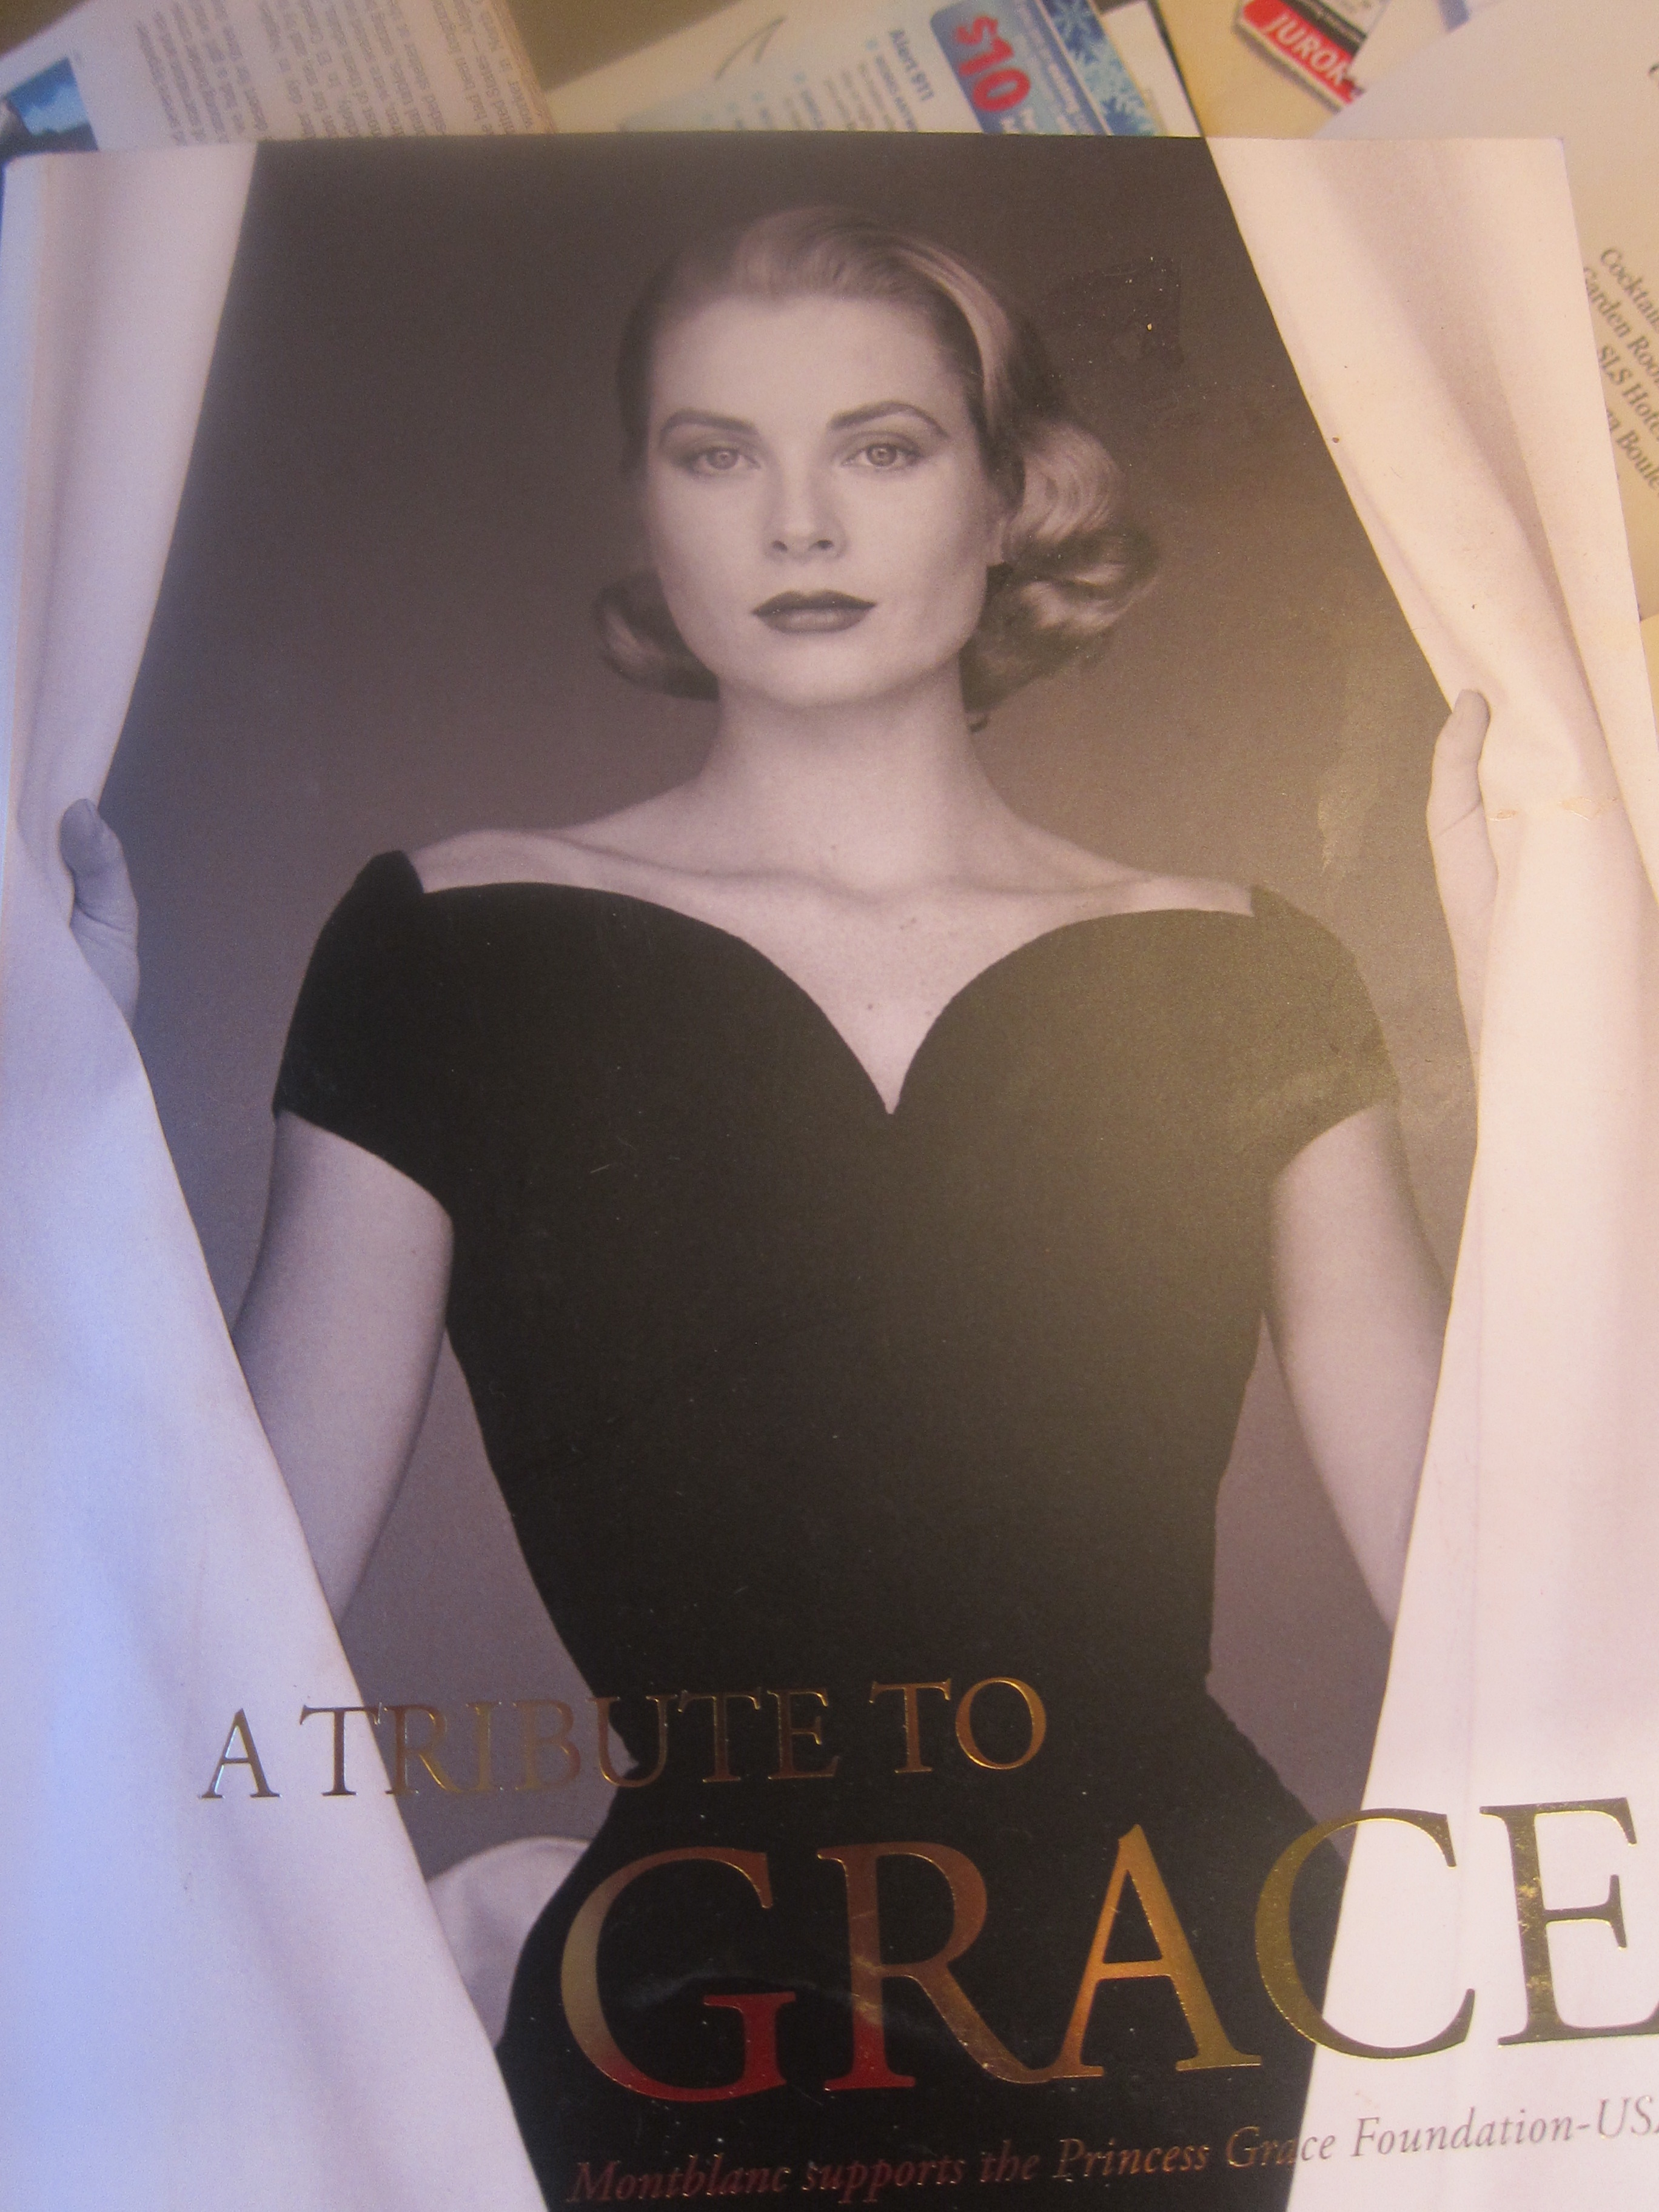 cover of Princess Grace program